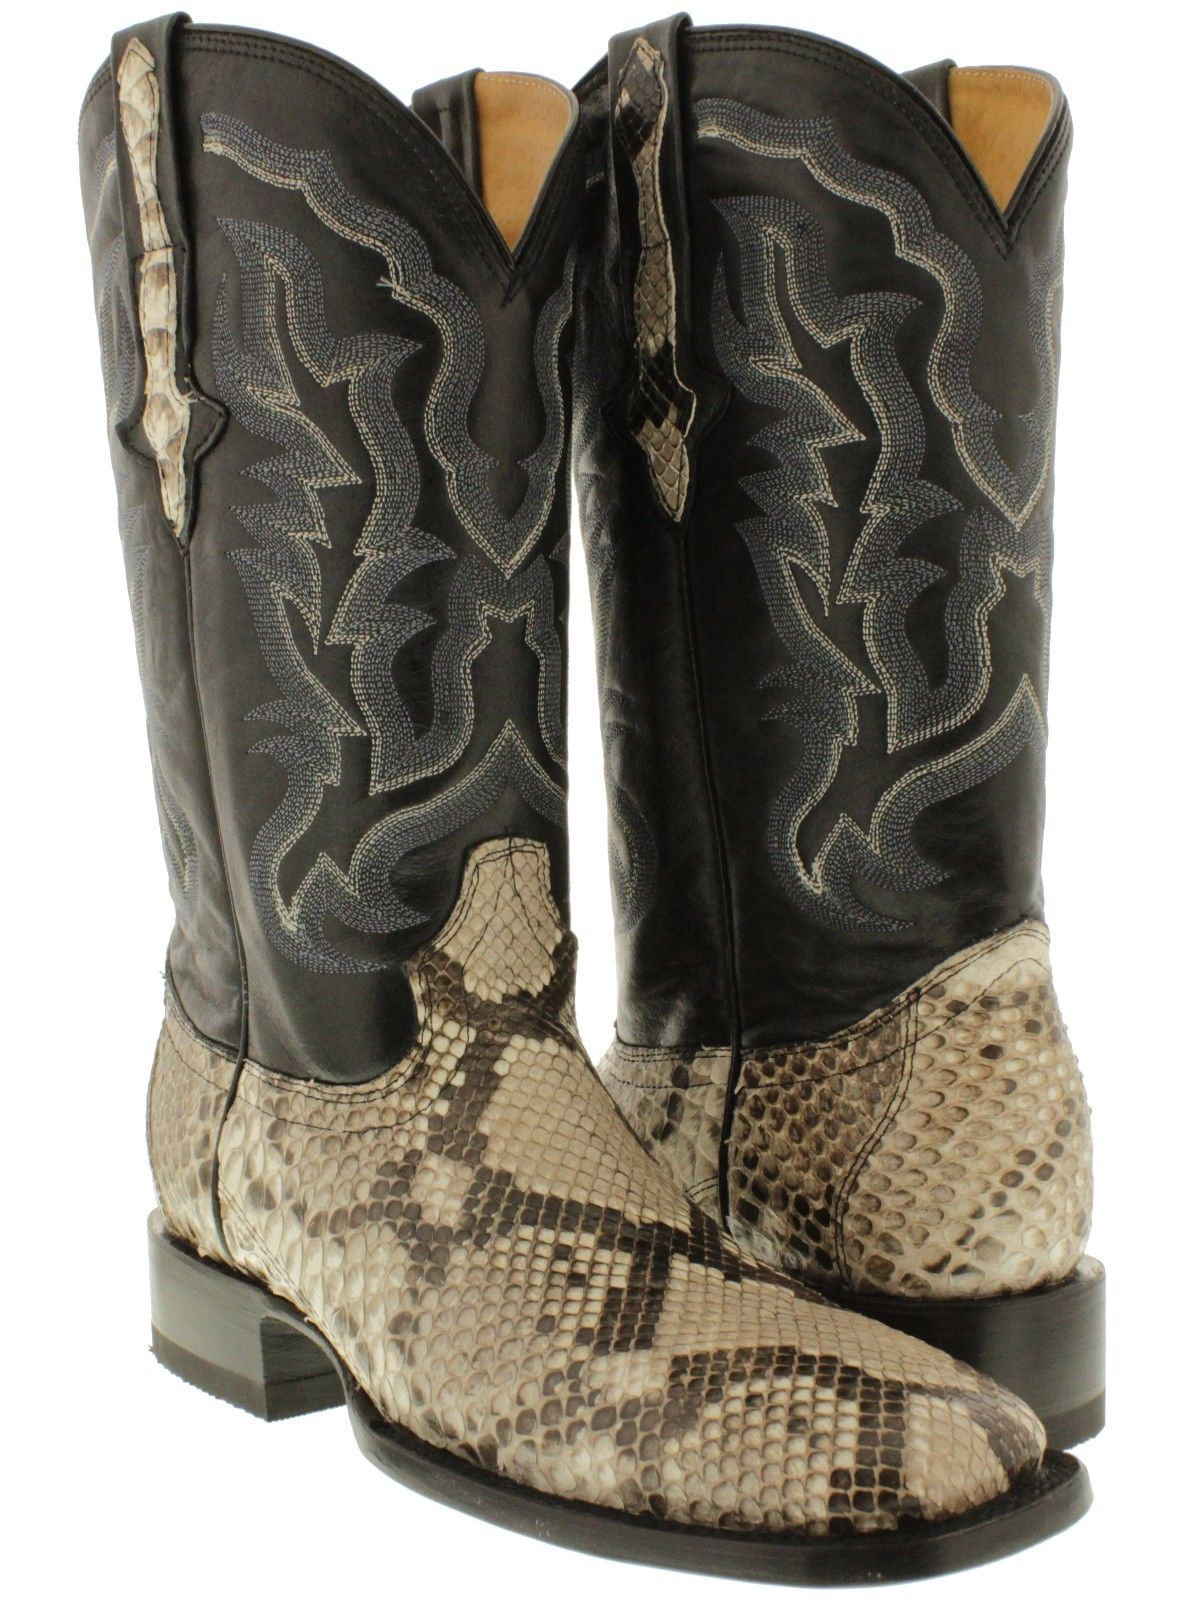 b2d7d4287f6 Details about mens exotic genuine snake skin python leather western cowboy  square toe boots...